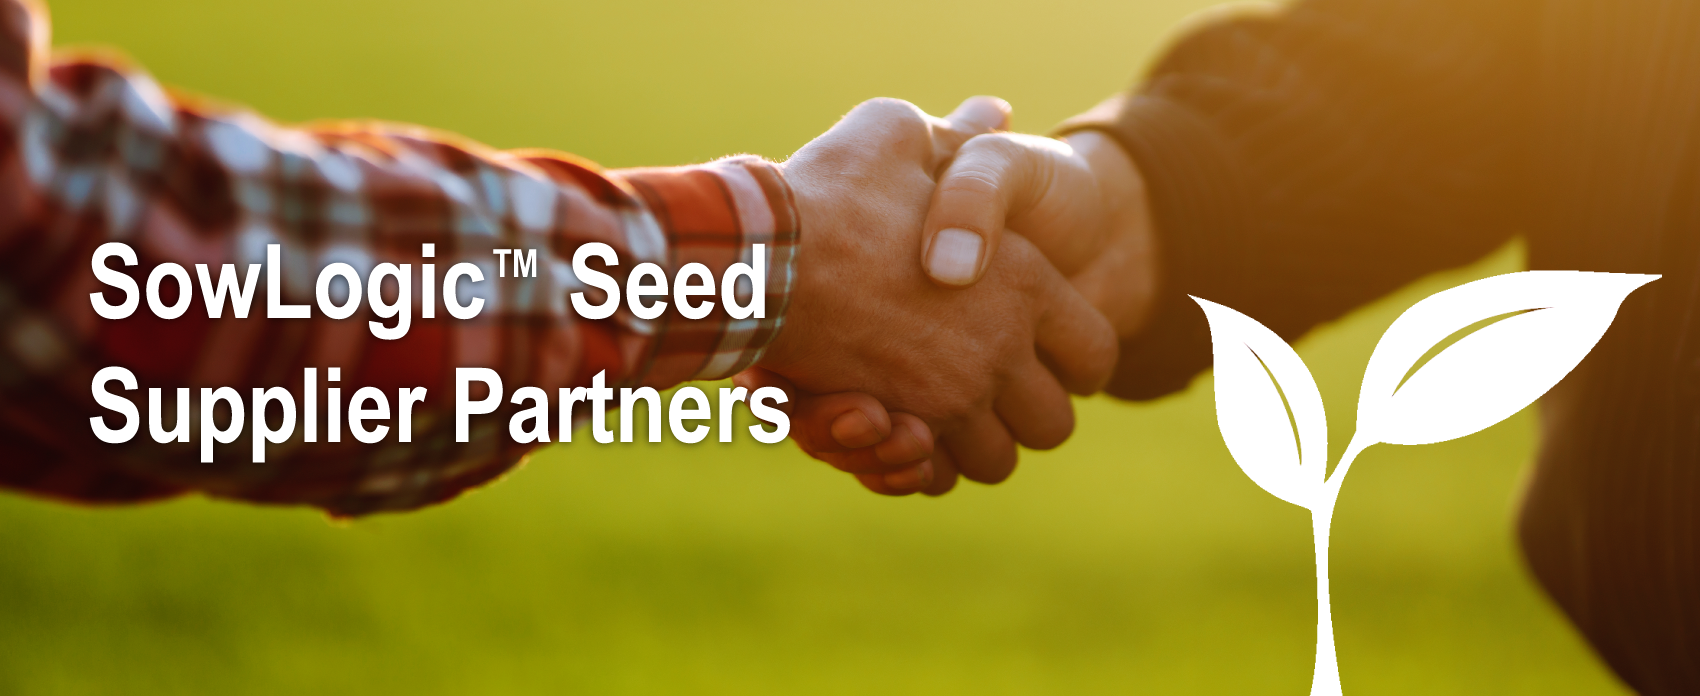 Farmers shaking hands in partnership